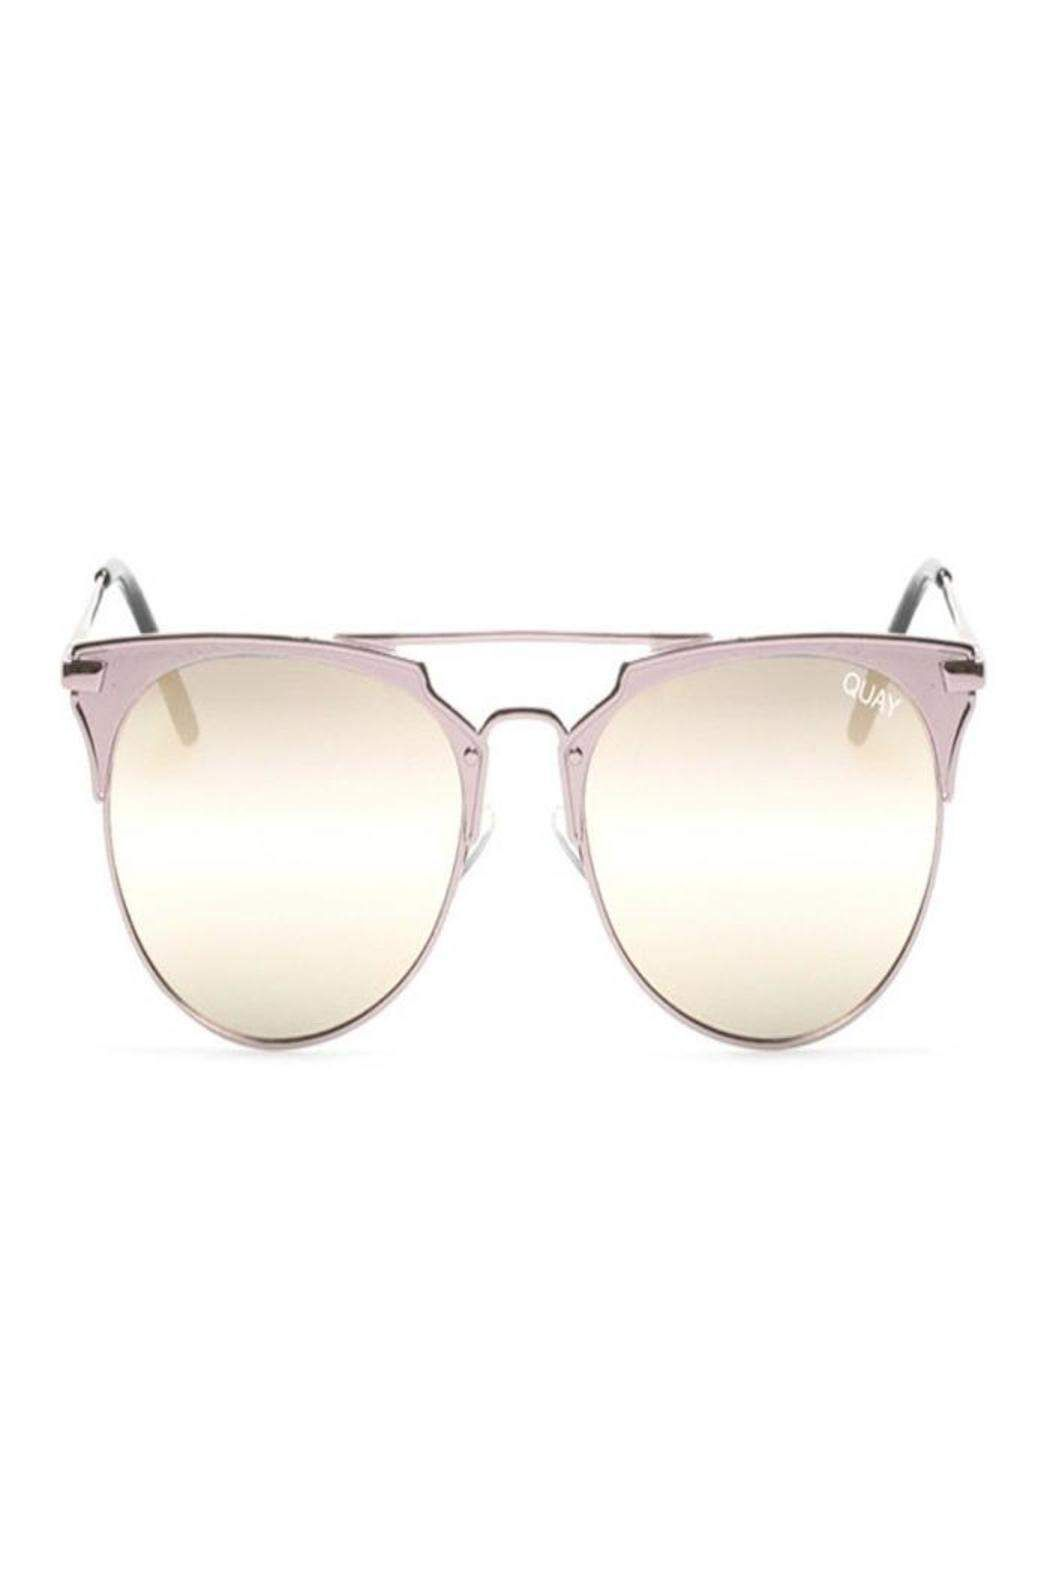 b23ec27c96 Limited edition Quay Australia sunglasses. Mirrored rose gold lenses with  stainless steel hinges. Nickel free metal frame. UV protection